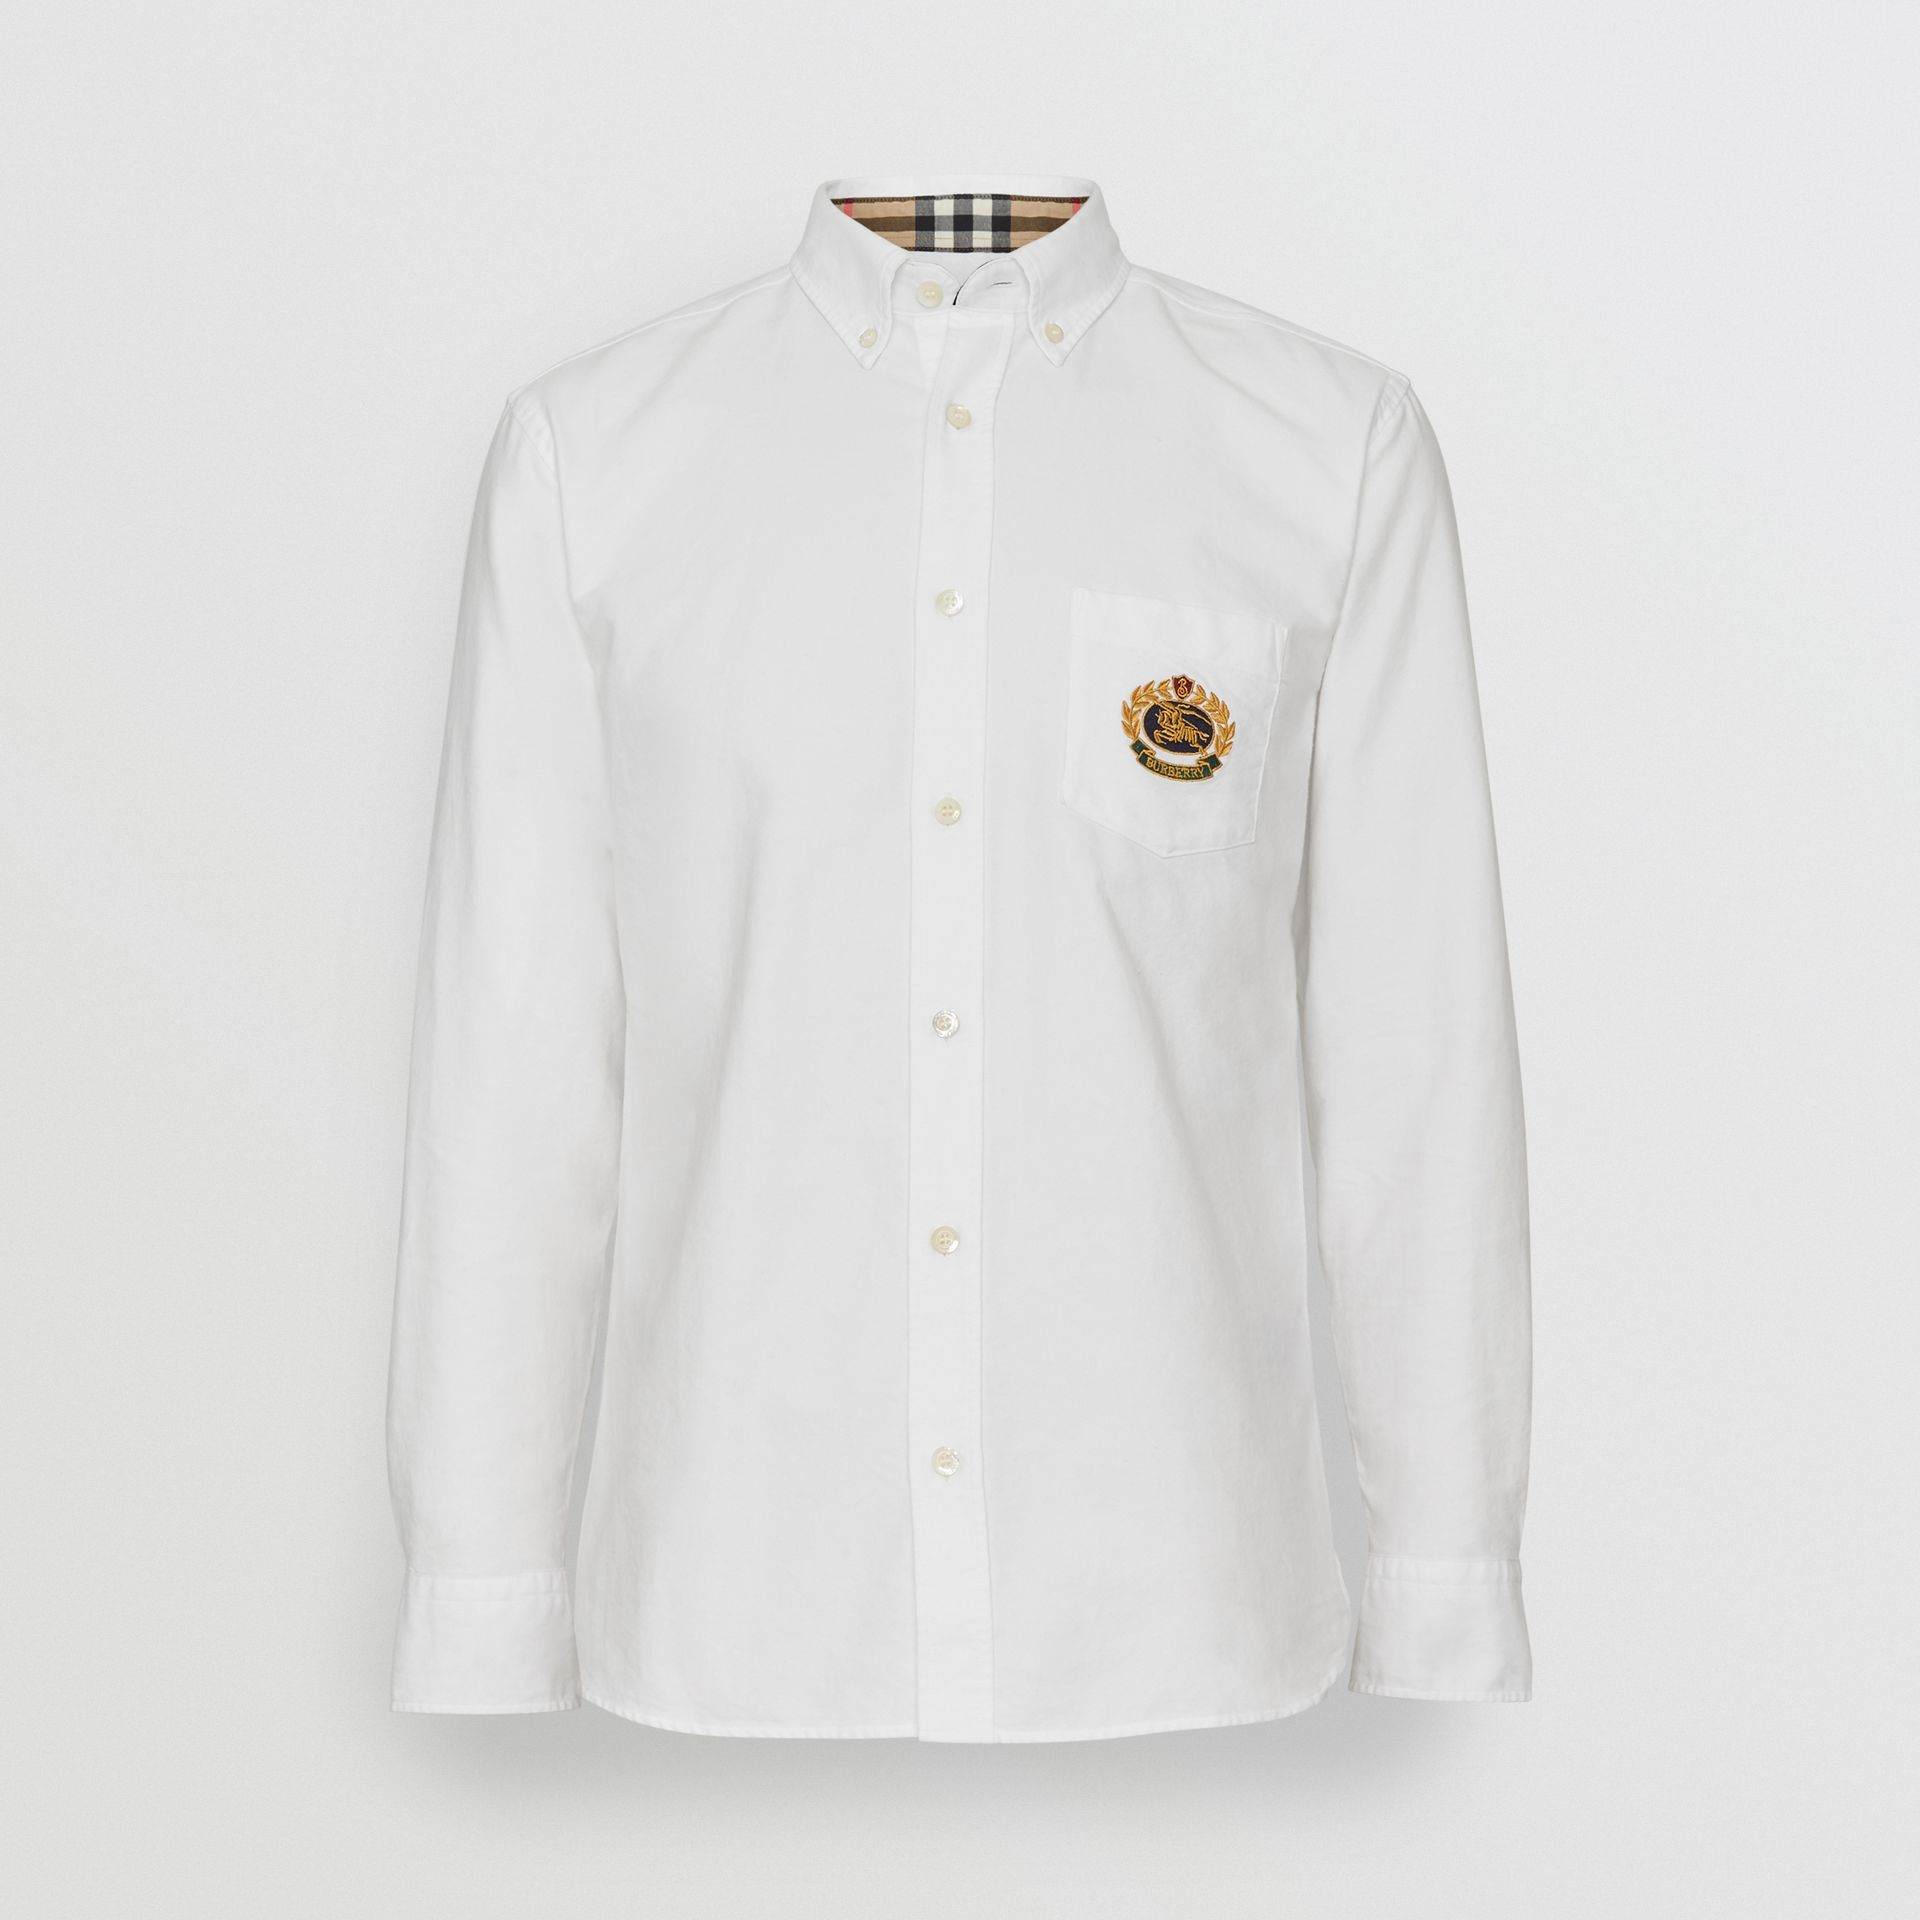 Embroidered Archive Logo Cotton Oxford Shirt in White - Men | Burberry United States - gallery image 3